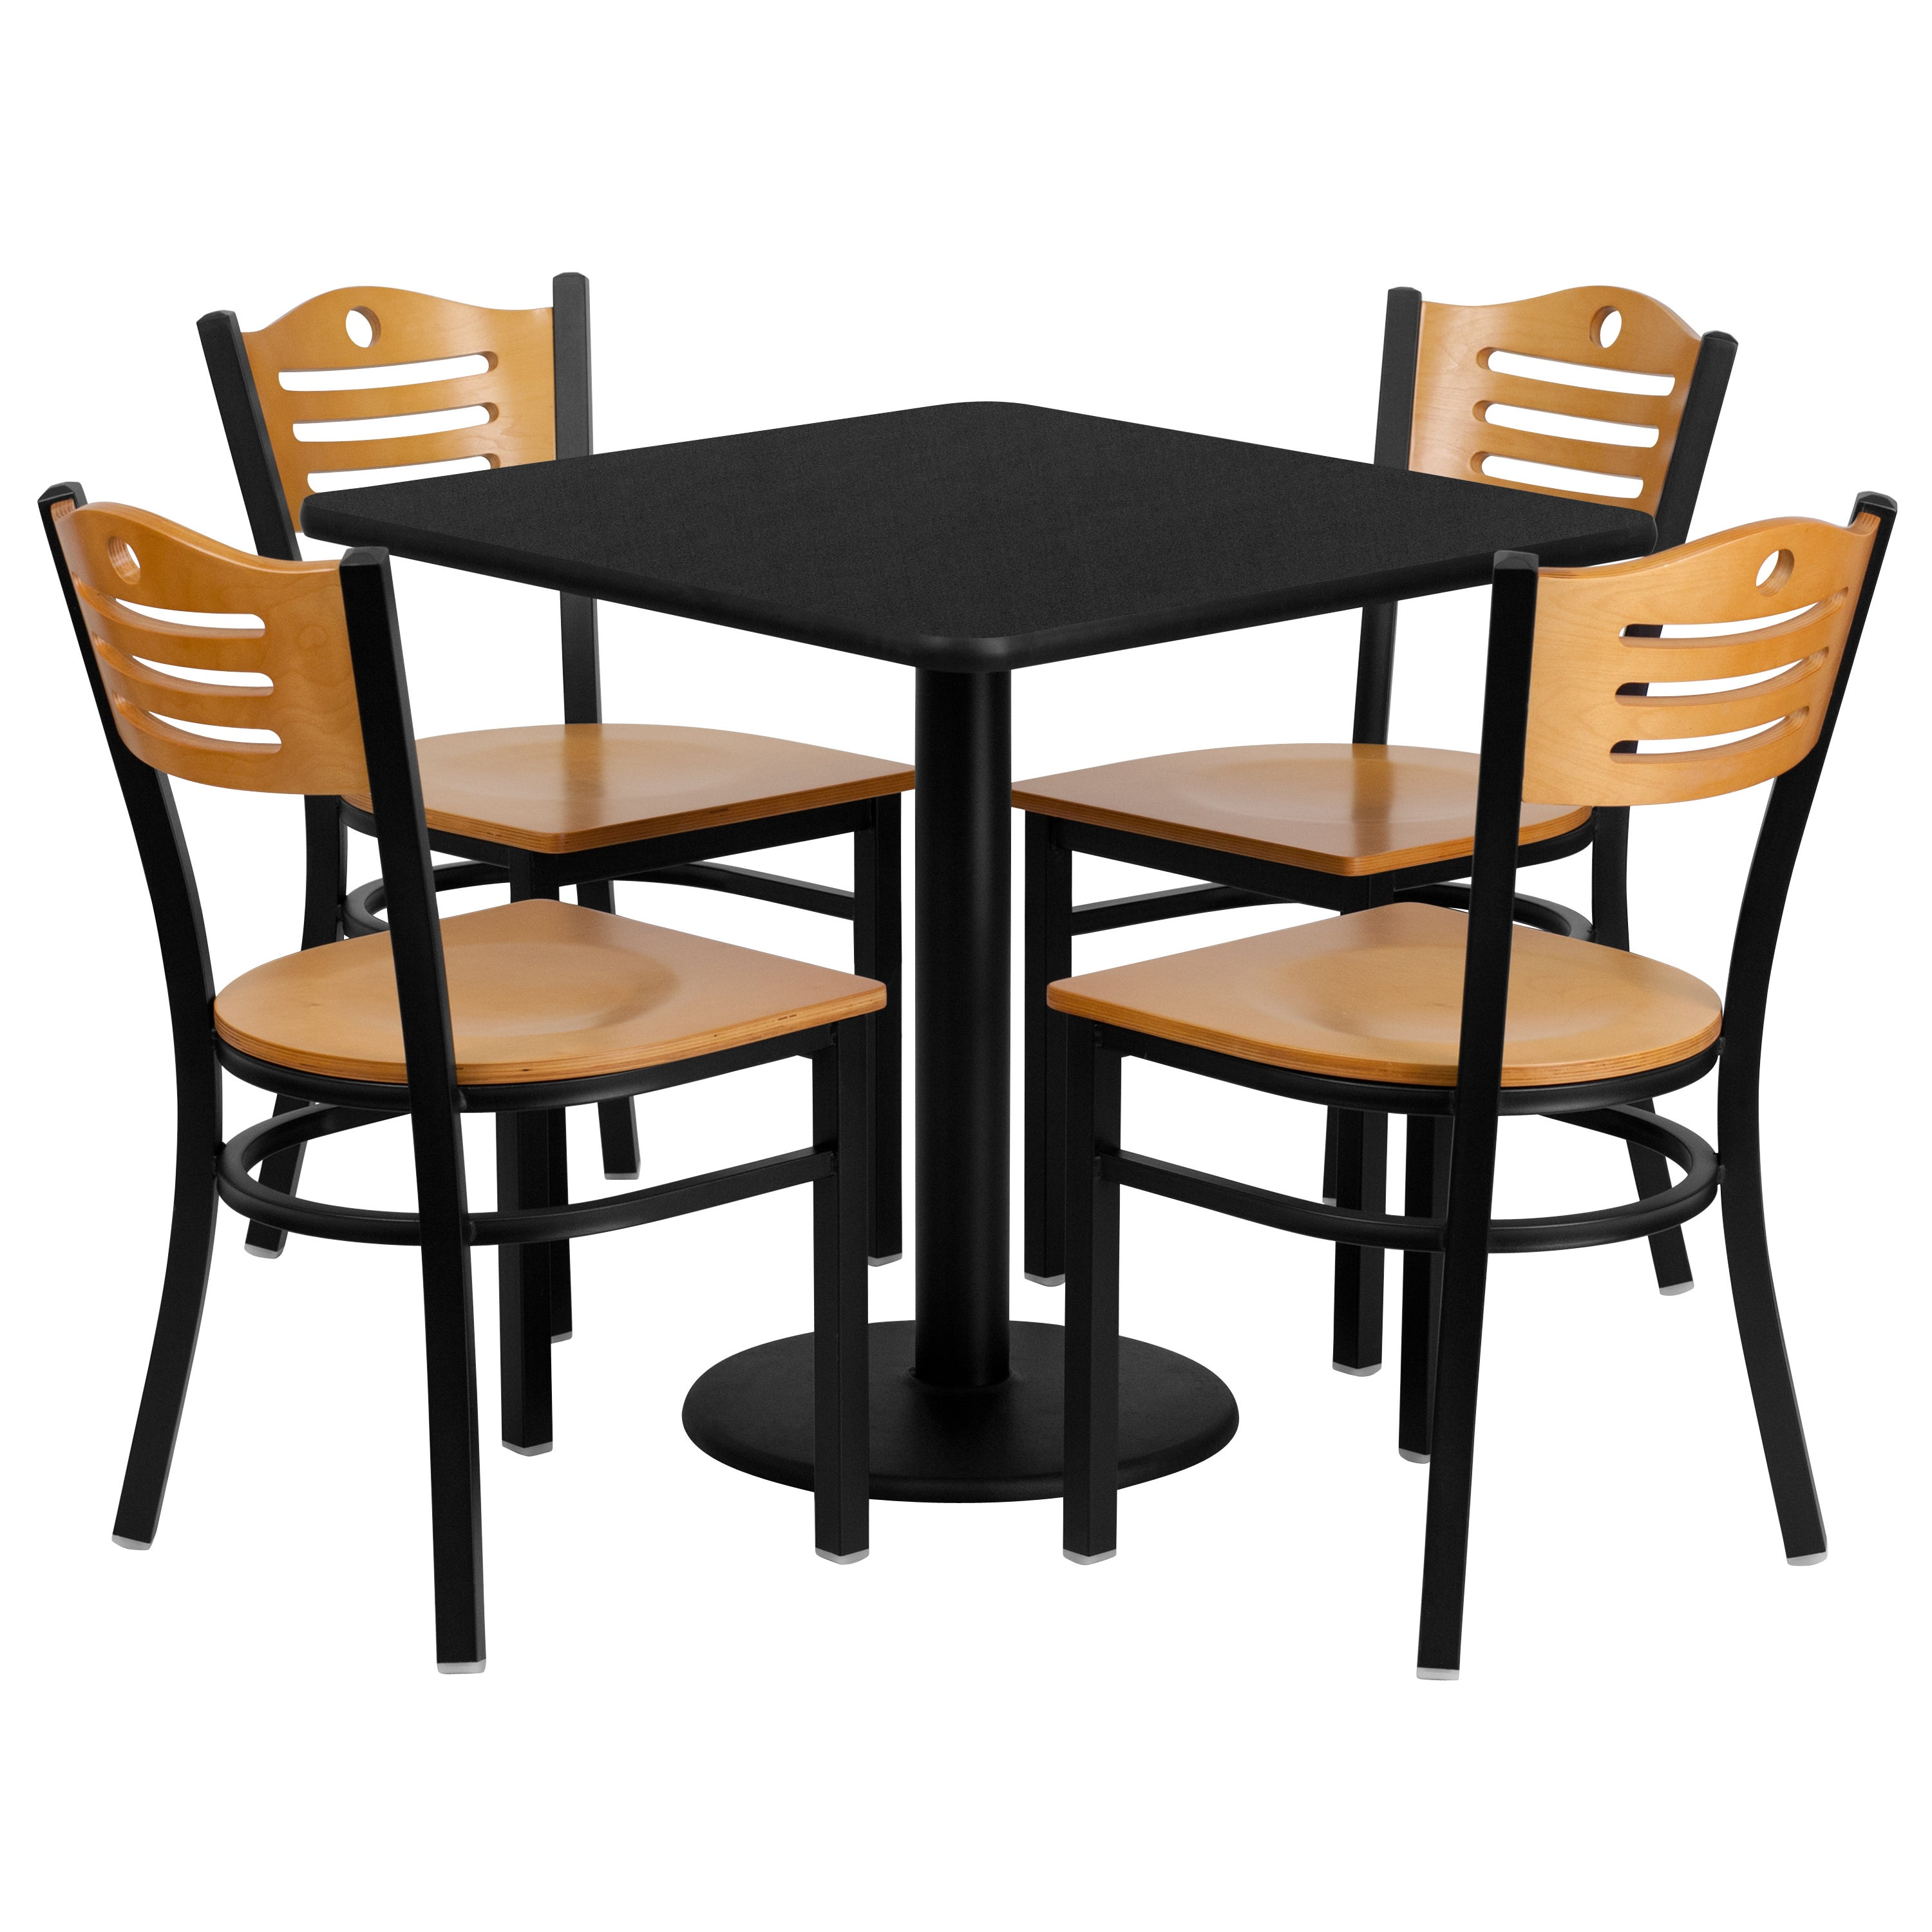 Shop 30-inch Square Black Laminate Table Set with Four (4) Natural